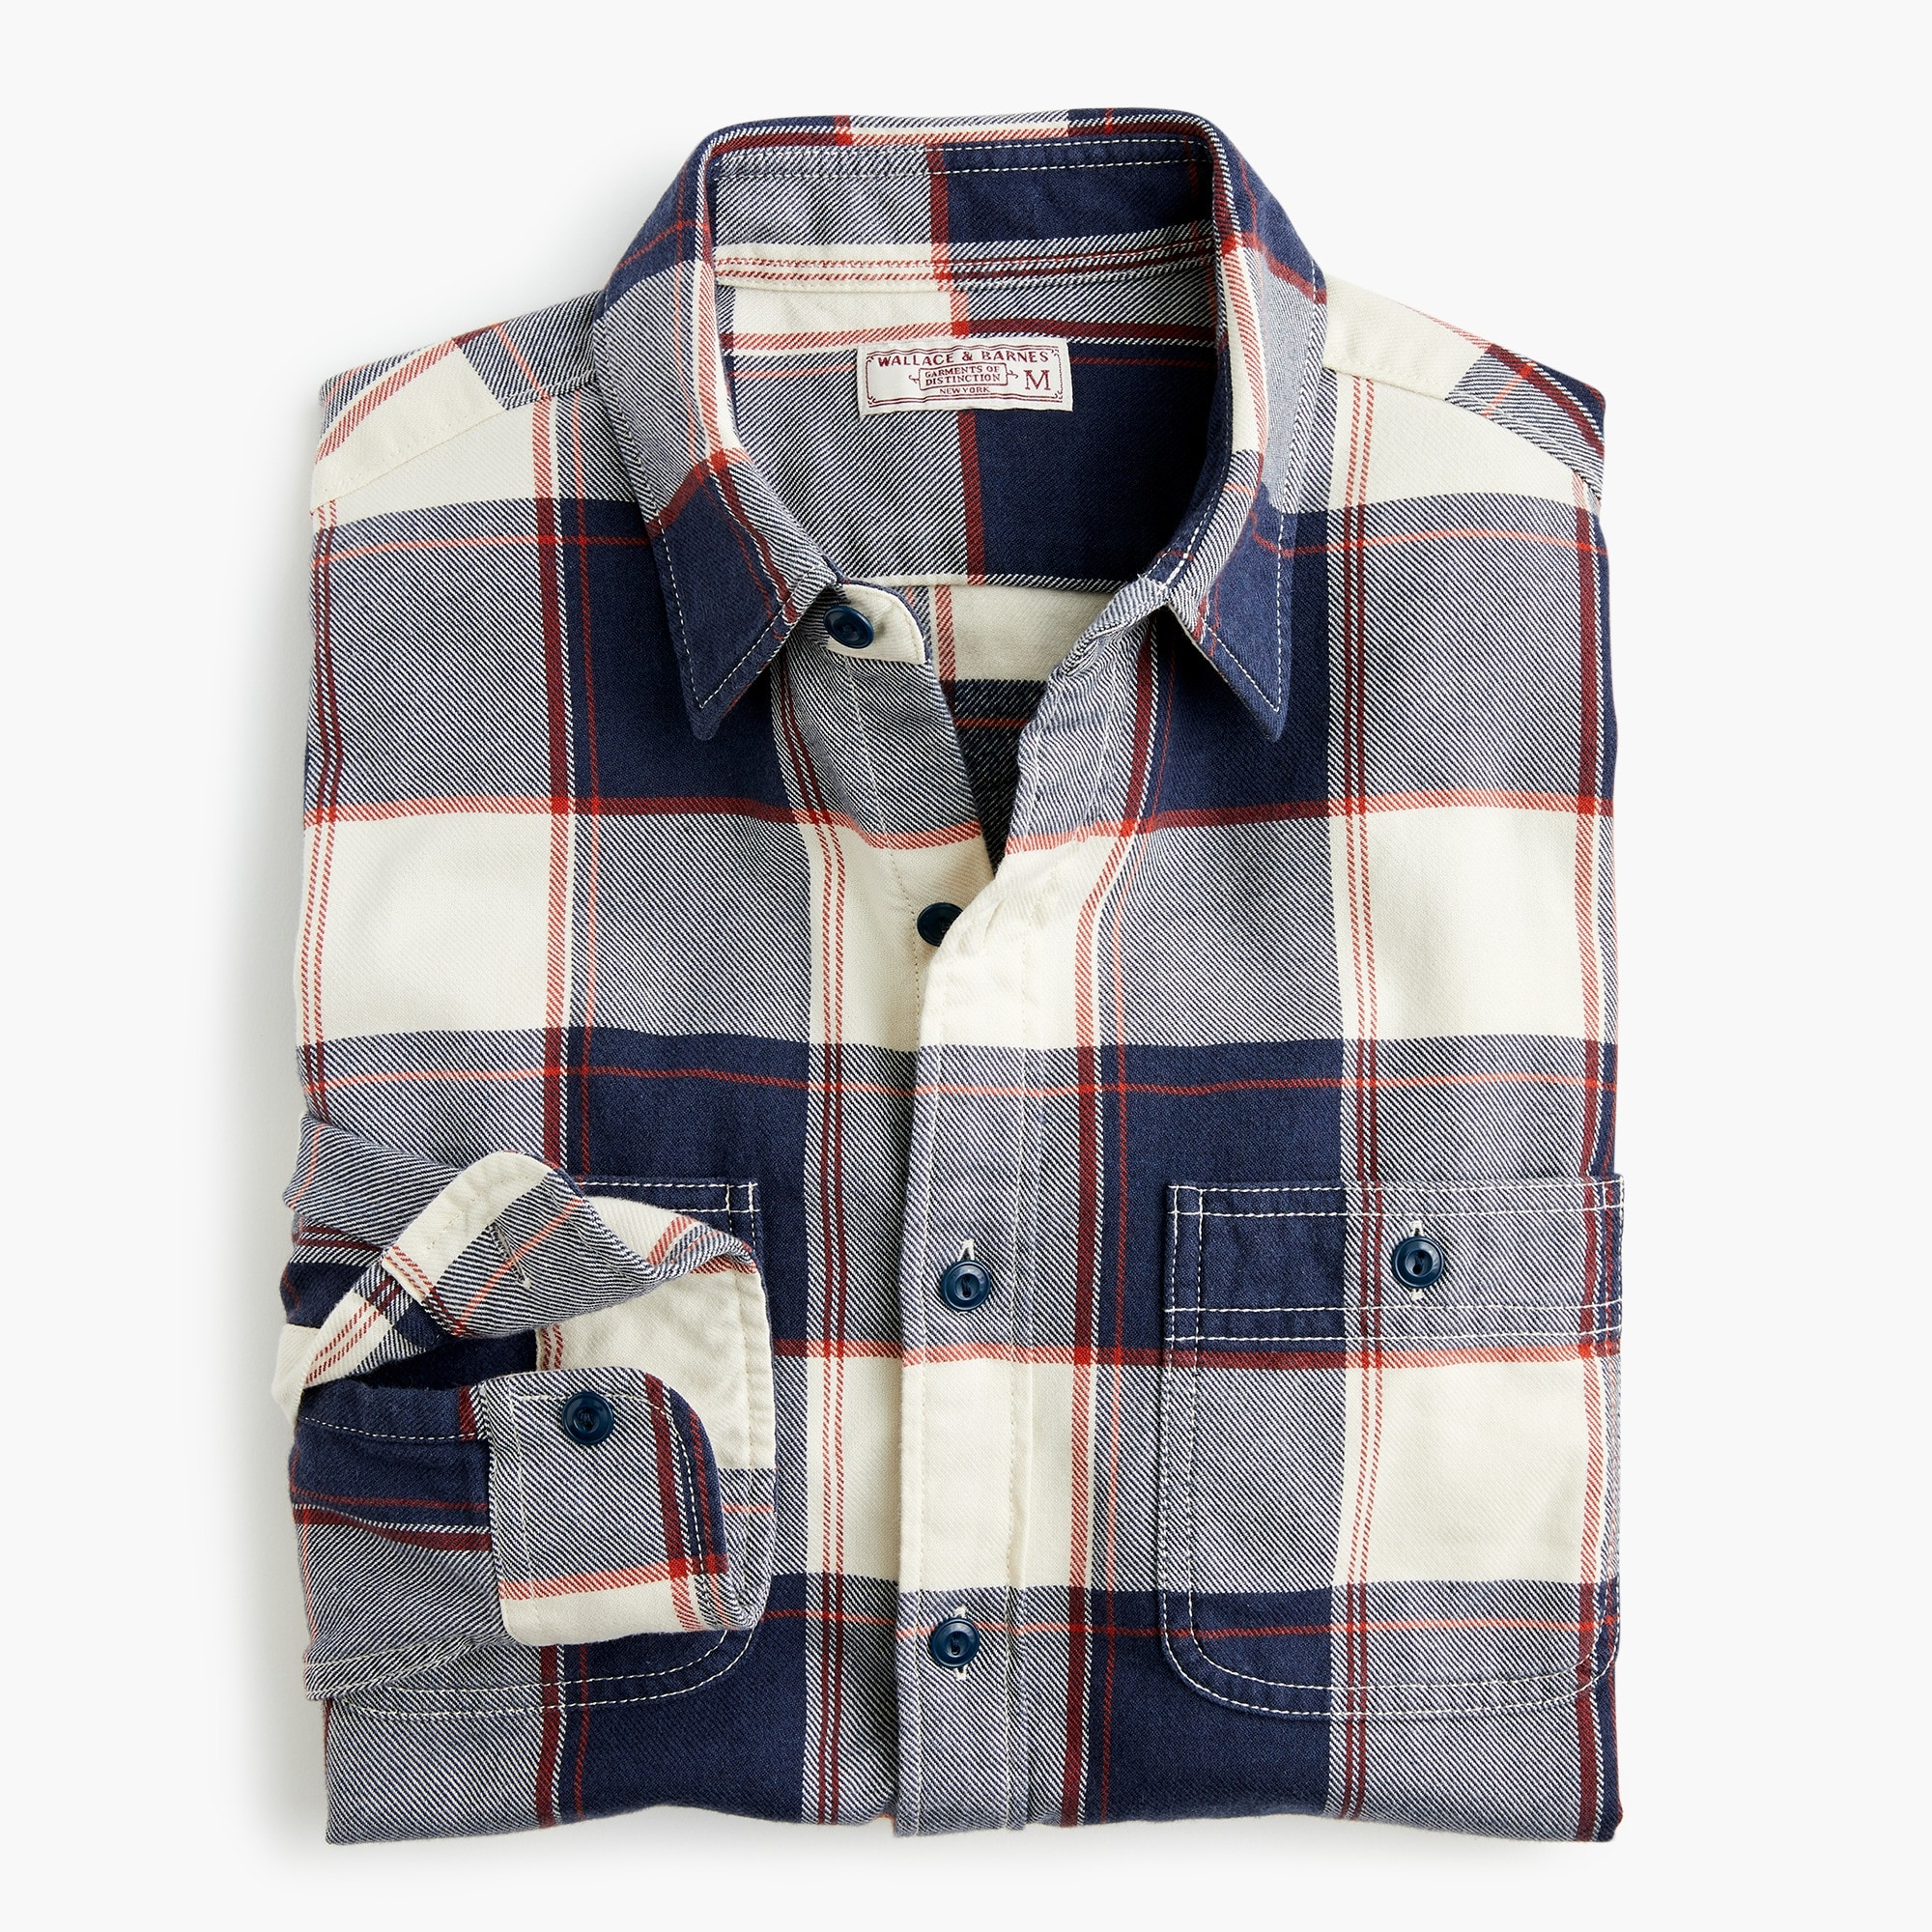 mens Slim Wallace & Barnes midweight flannel shirt in bold stripe plaid